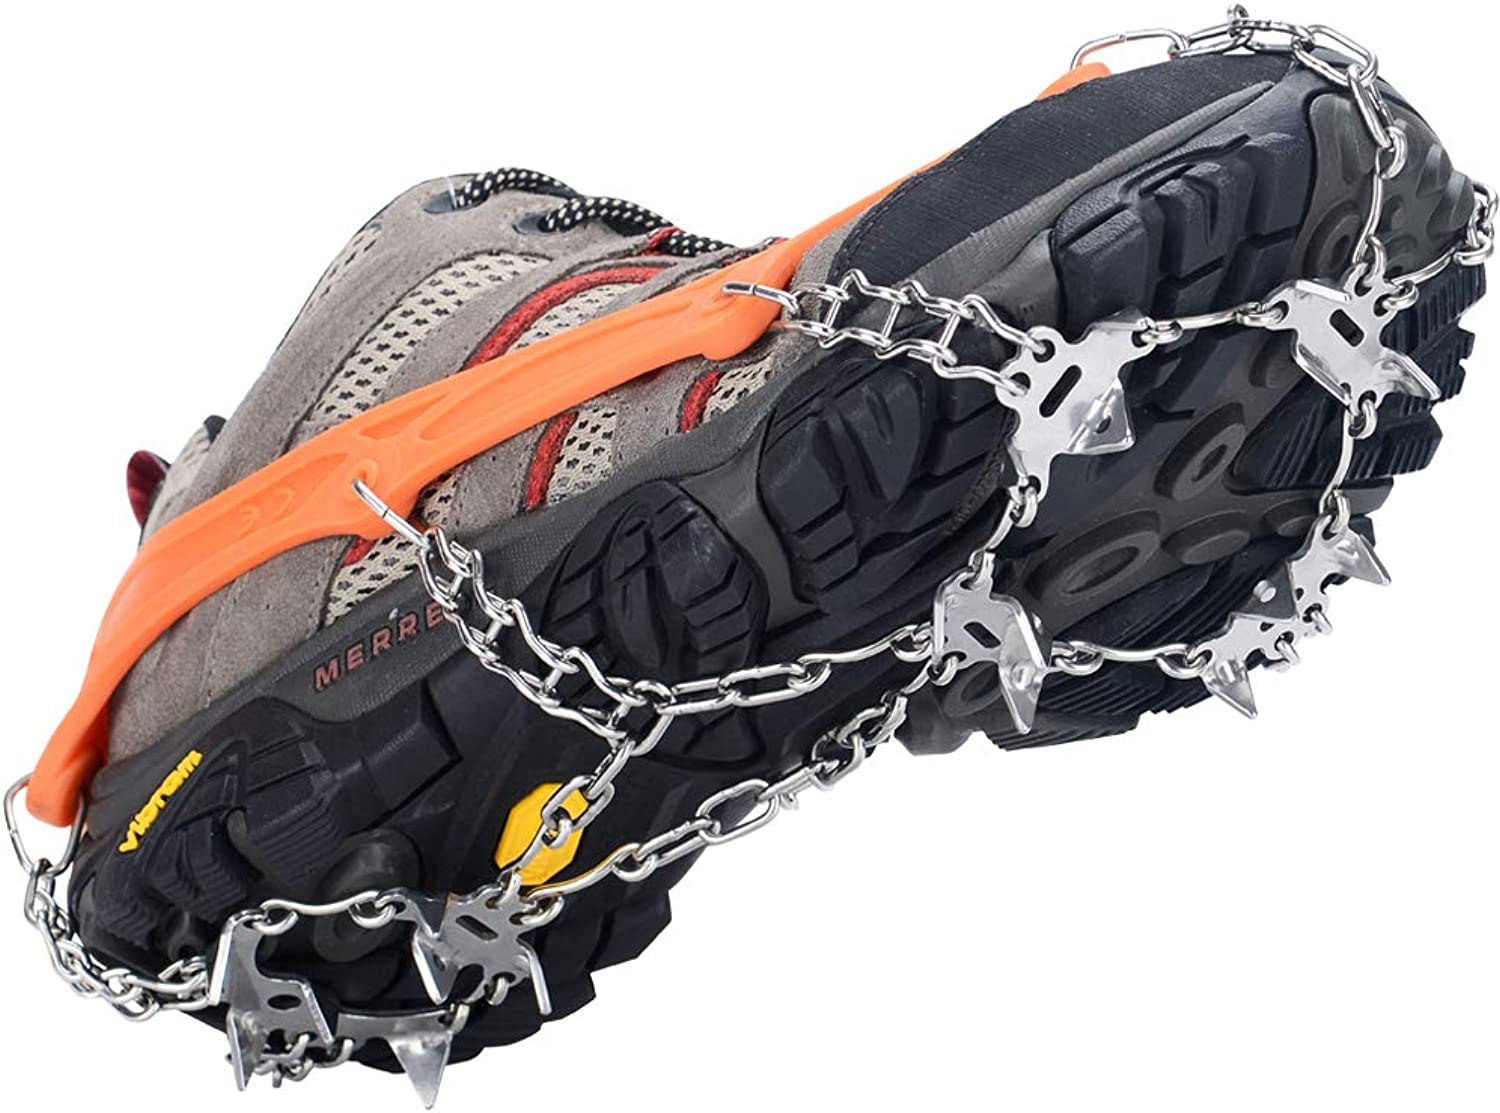 Uelfbaby Walk Traction Cleats Ice Snow Grips Anti Slip Stainless Steel Spikes 19 Teeths Crampons for Boots shoes L XL XXL